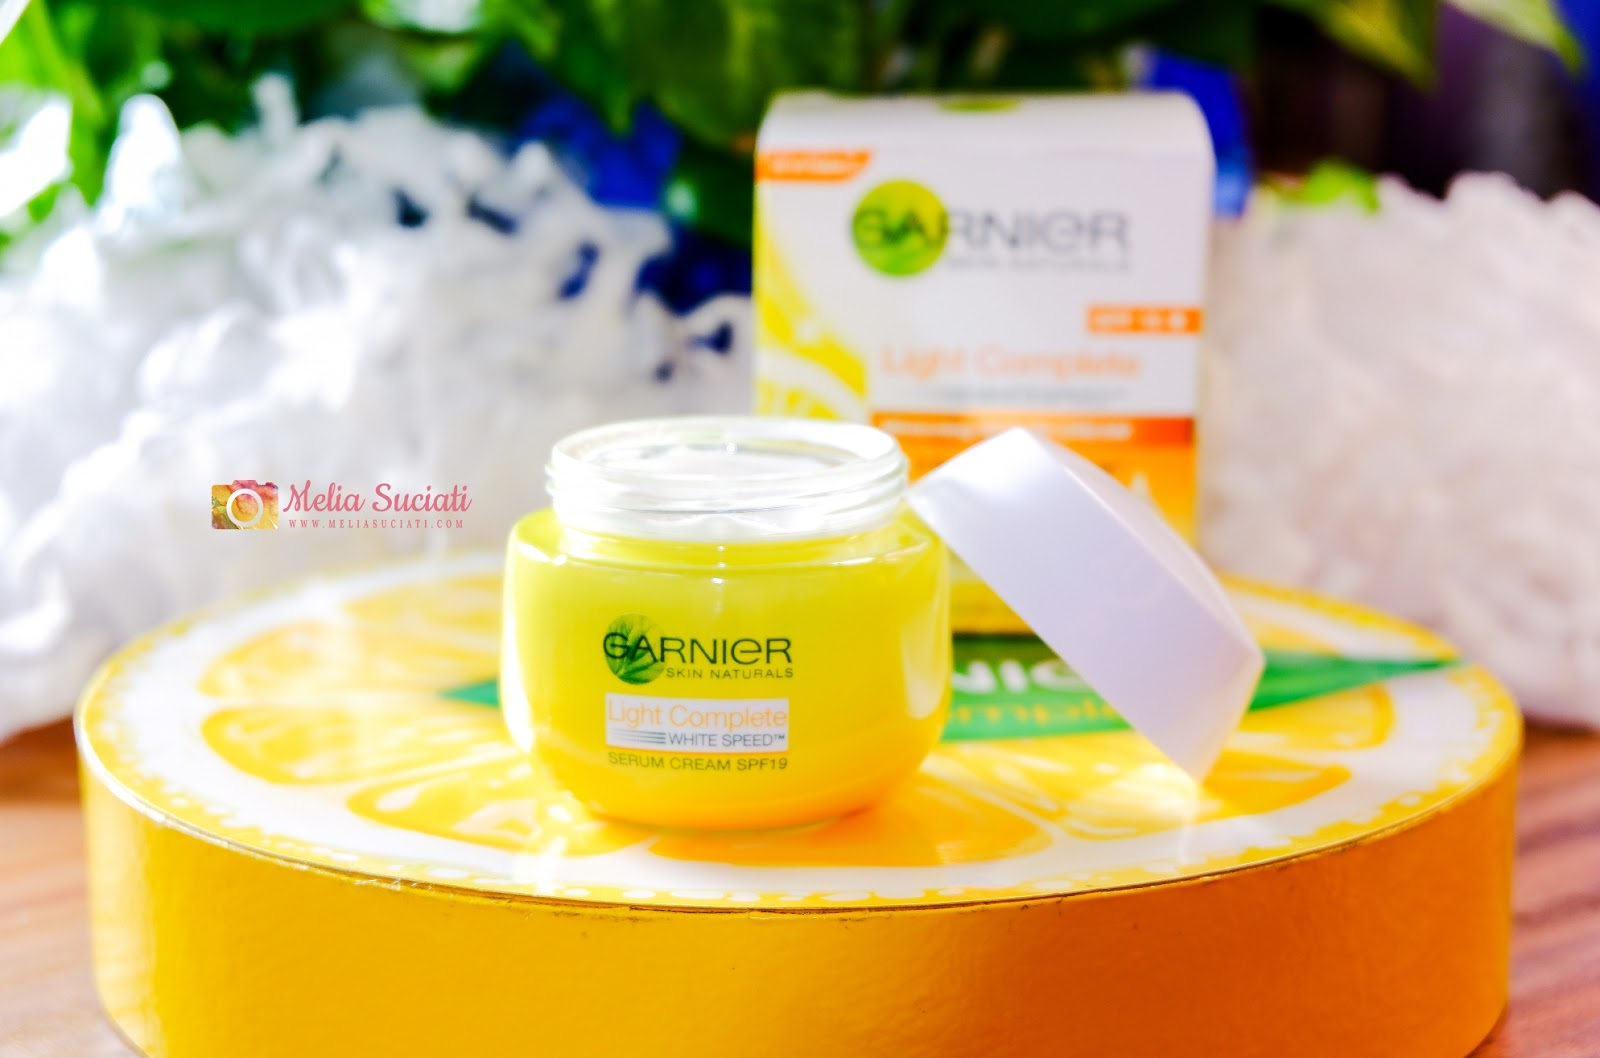 Review Garnier Light Complete White Speed Yuzu Whitening Serum Cream